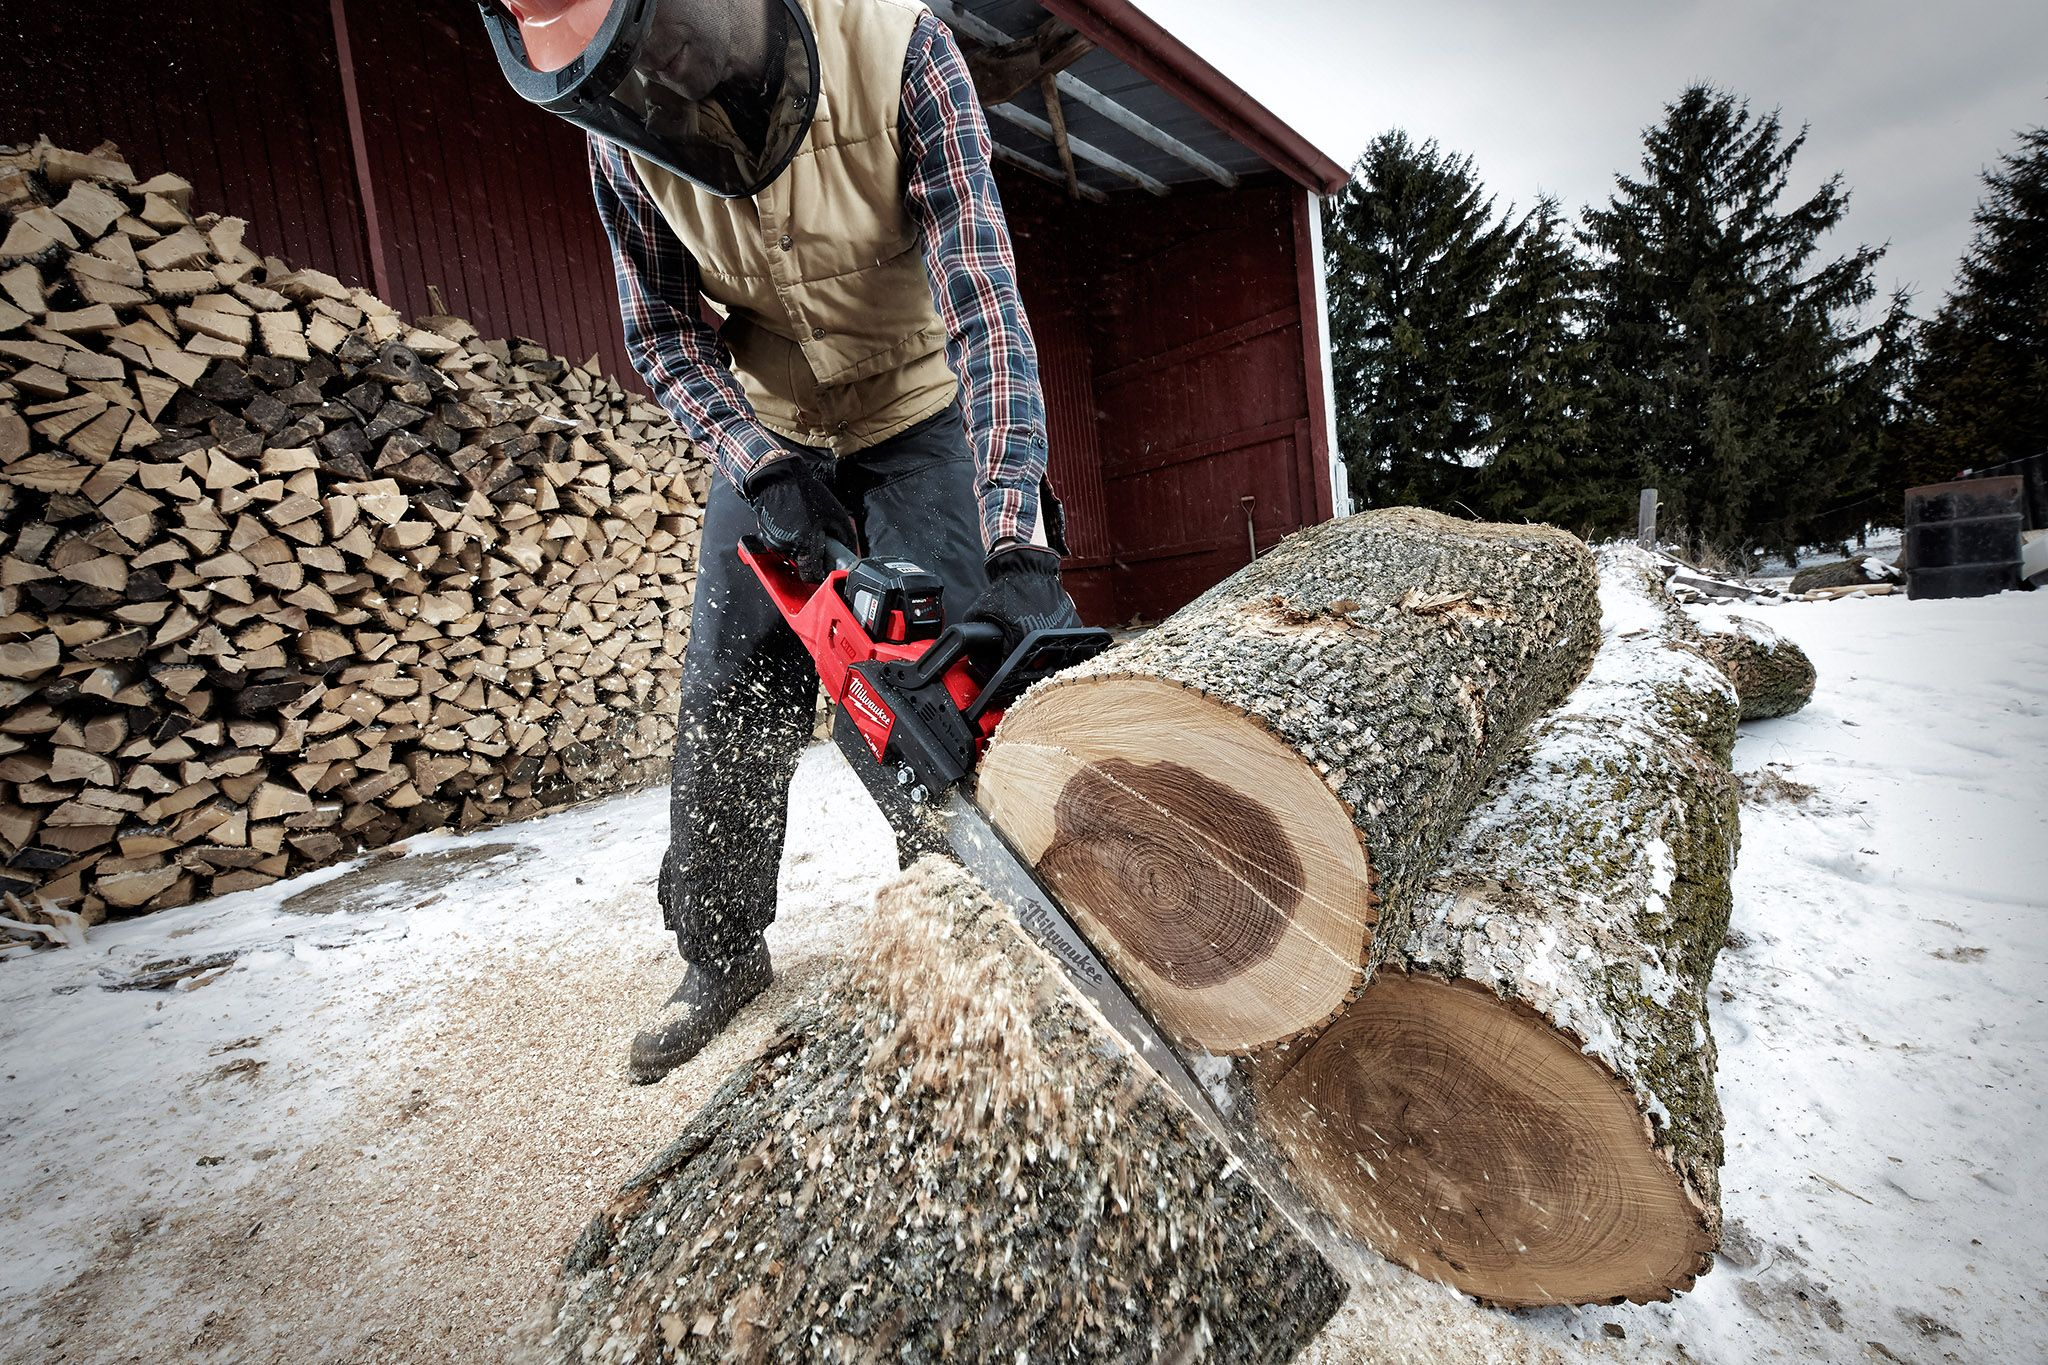 A Milwaukee battery-powered chainsaw used to cut down a tree